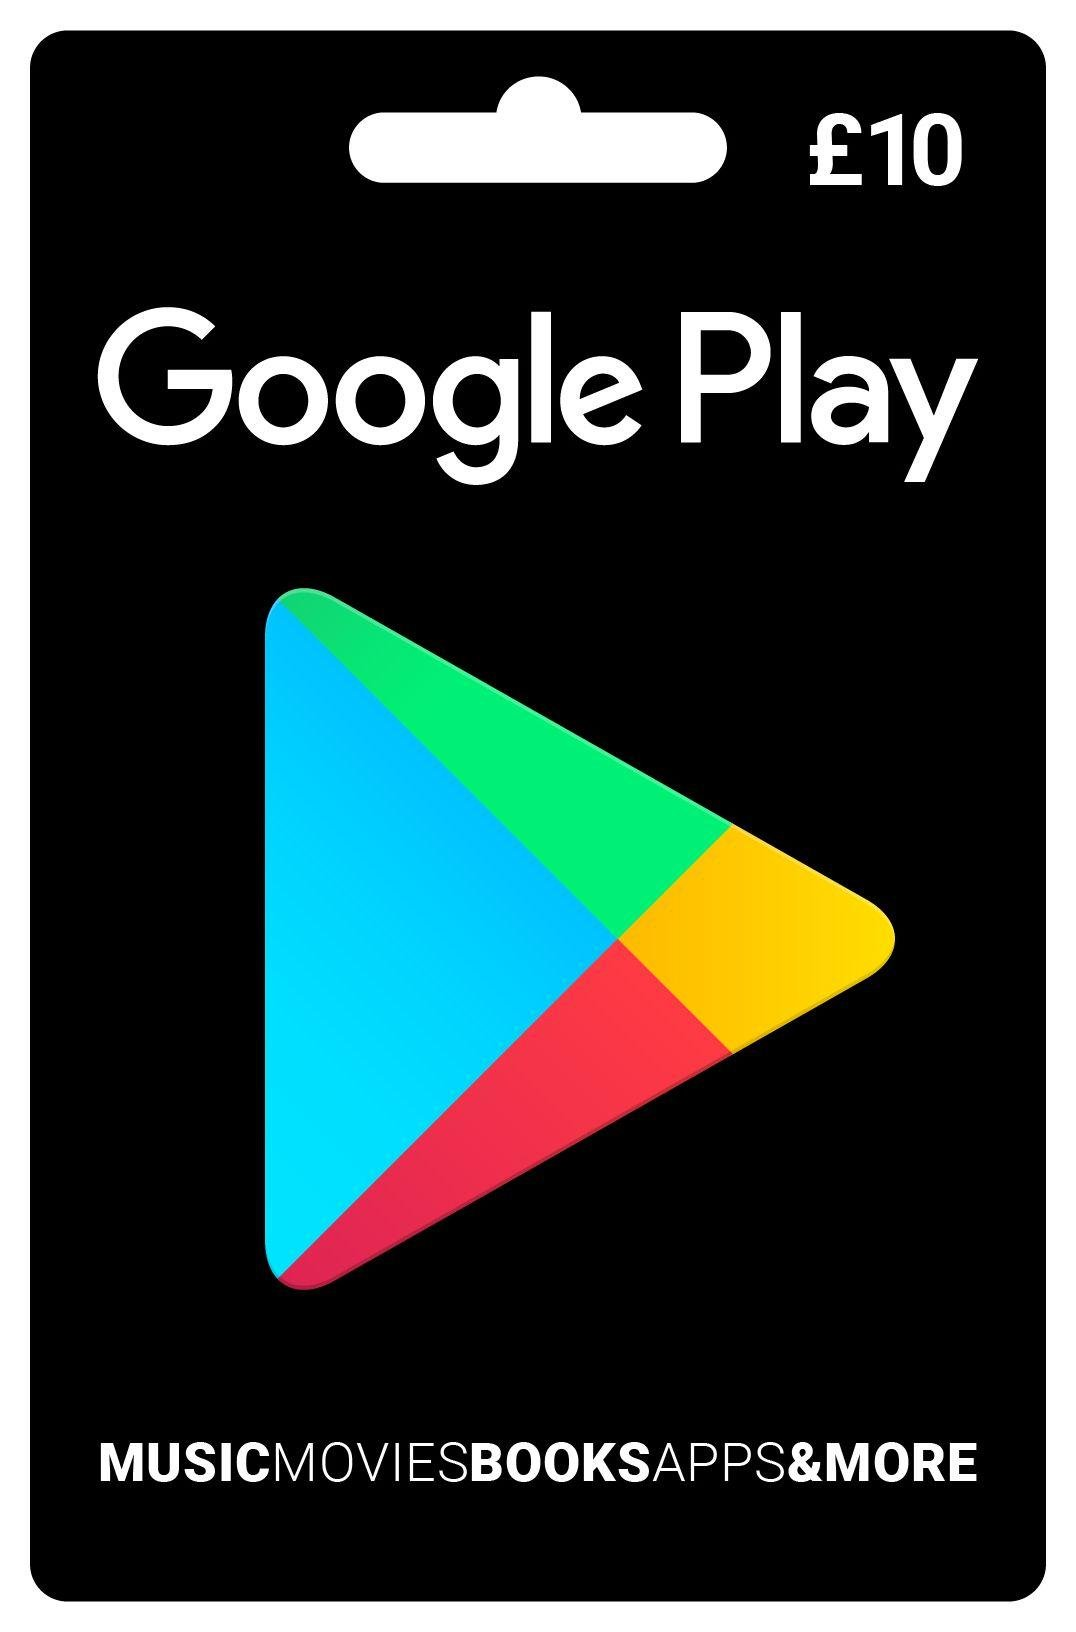 ?10 Google Play Voucher